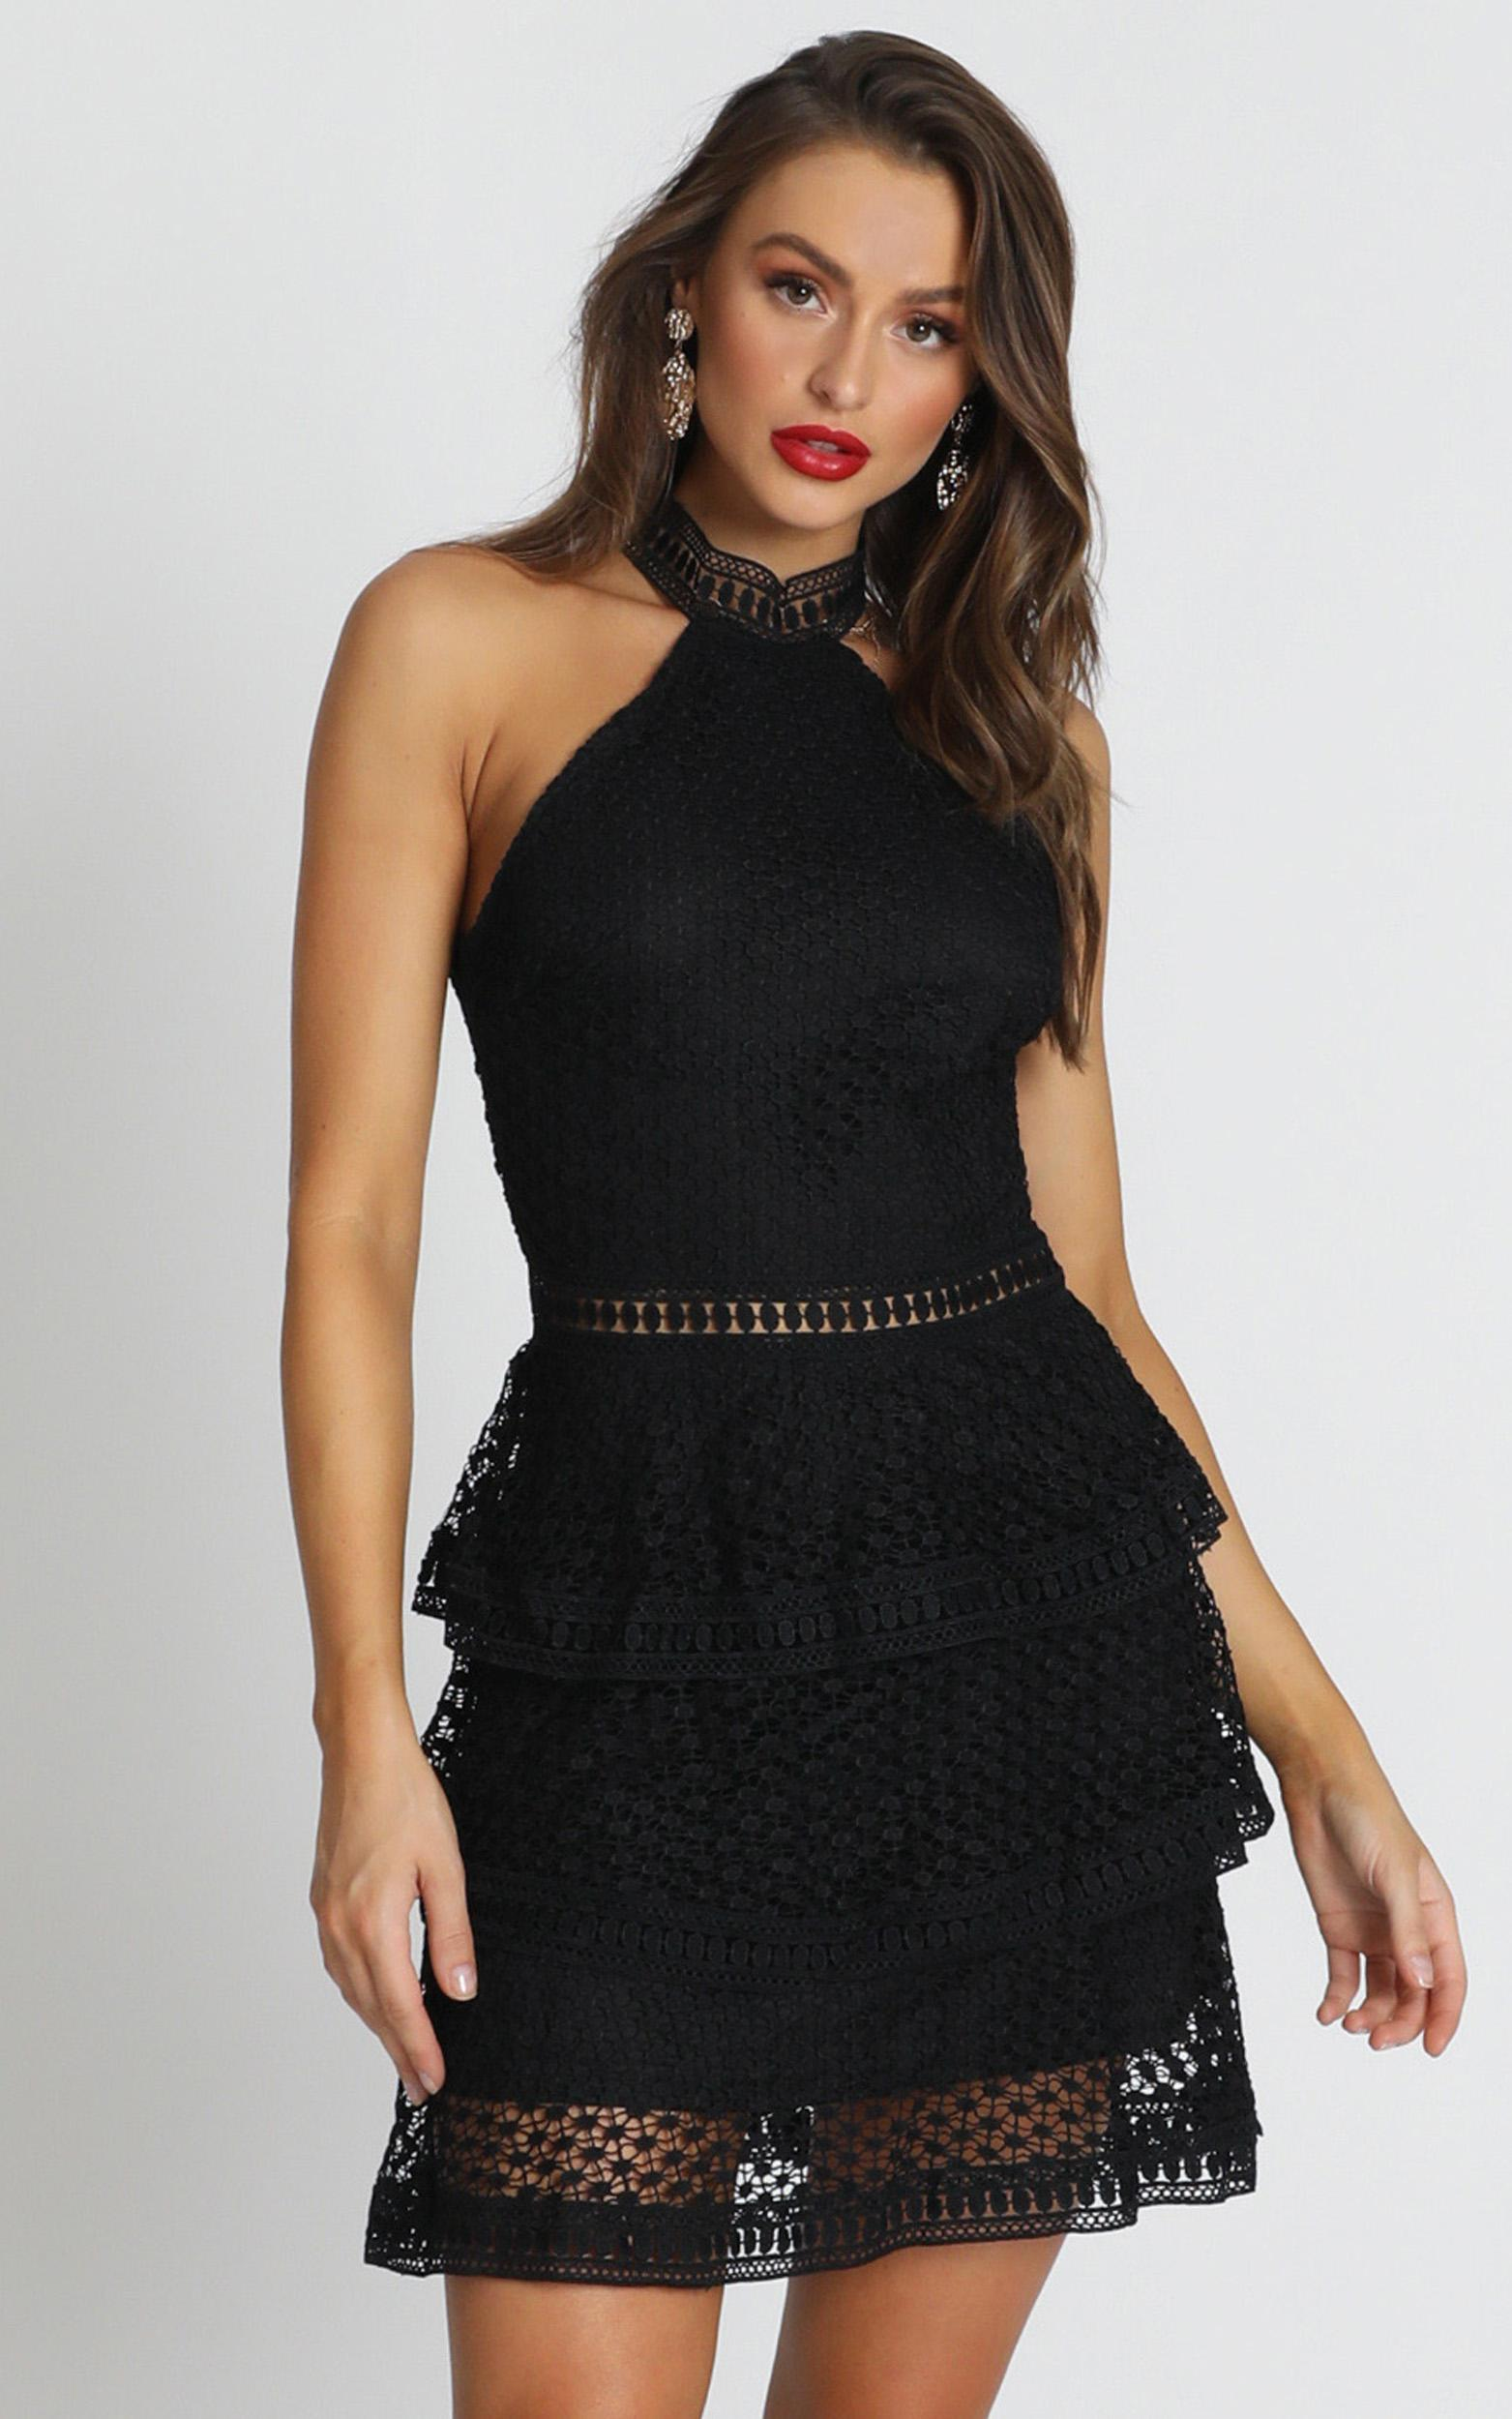 Miami Night dress in black lace - 12 (L), Black, hi-res image number null